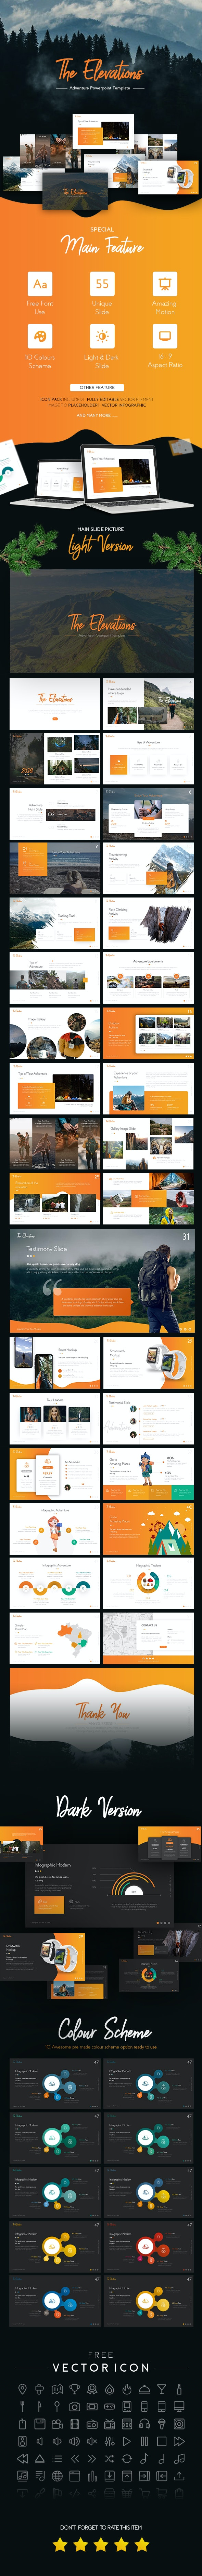 Elevations - Adventure PowerPoint Template - PowerPoint Templates Presentation Templates